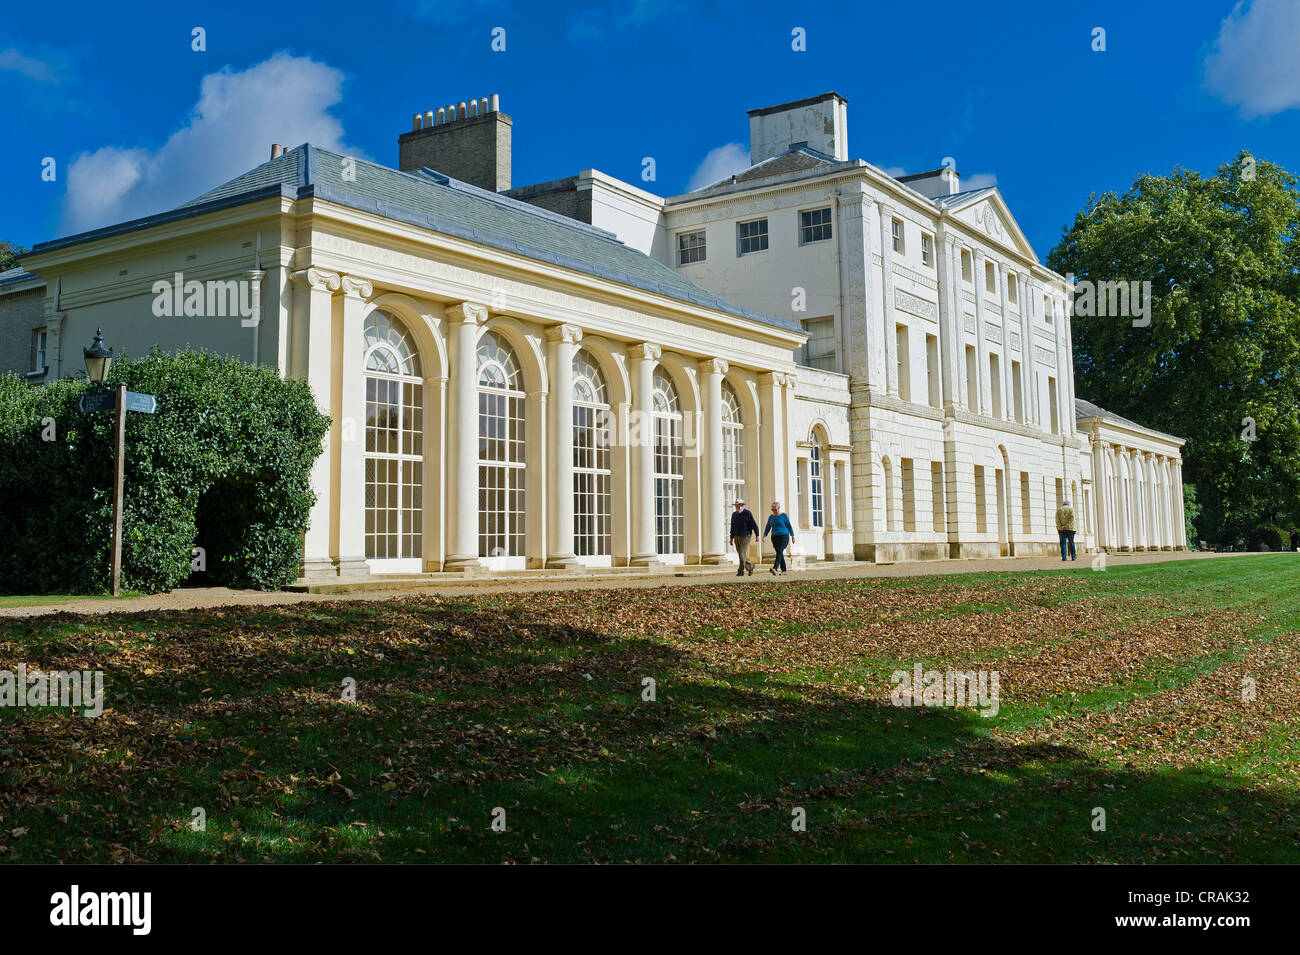 Kenwood House Neoclassical Stately Home Hampstead Heath